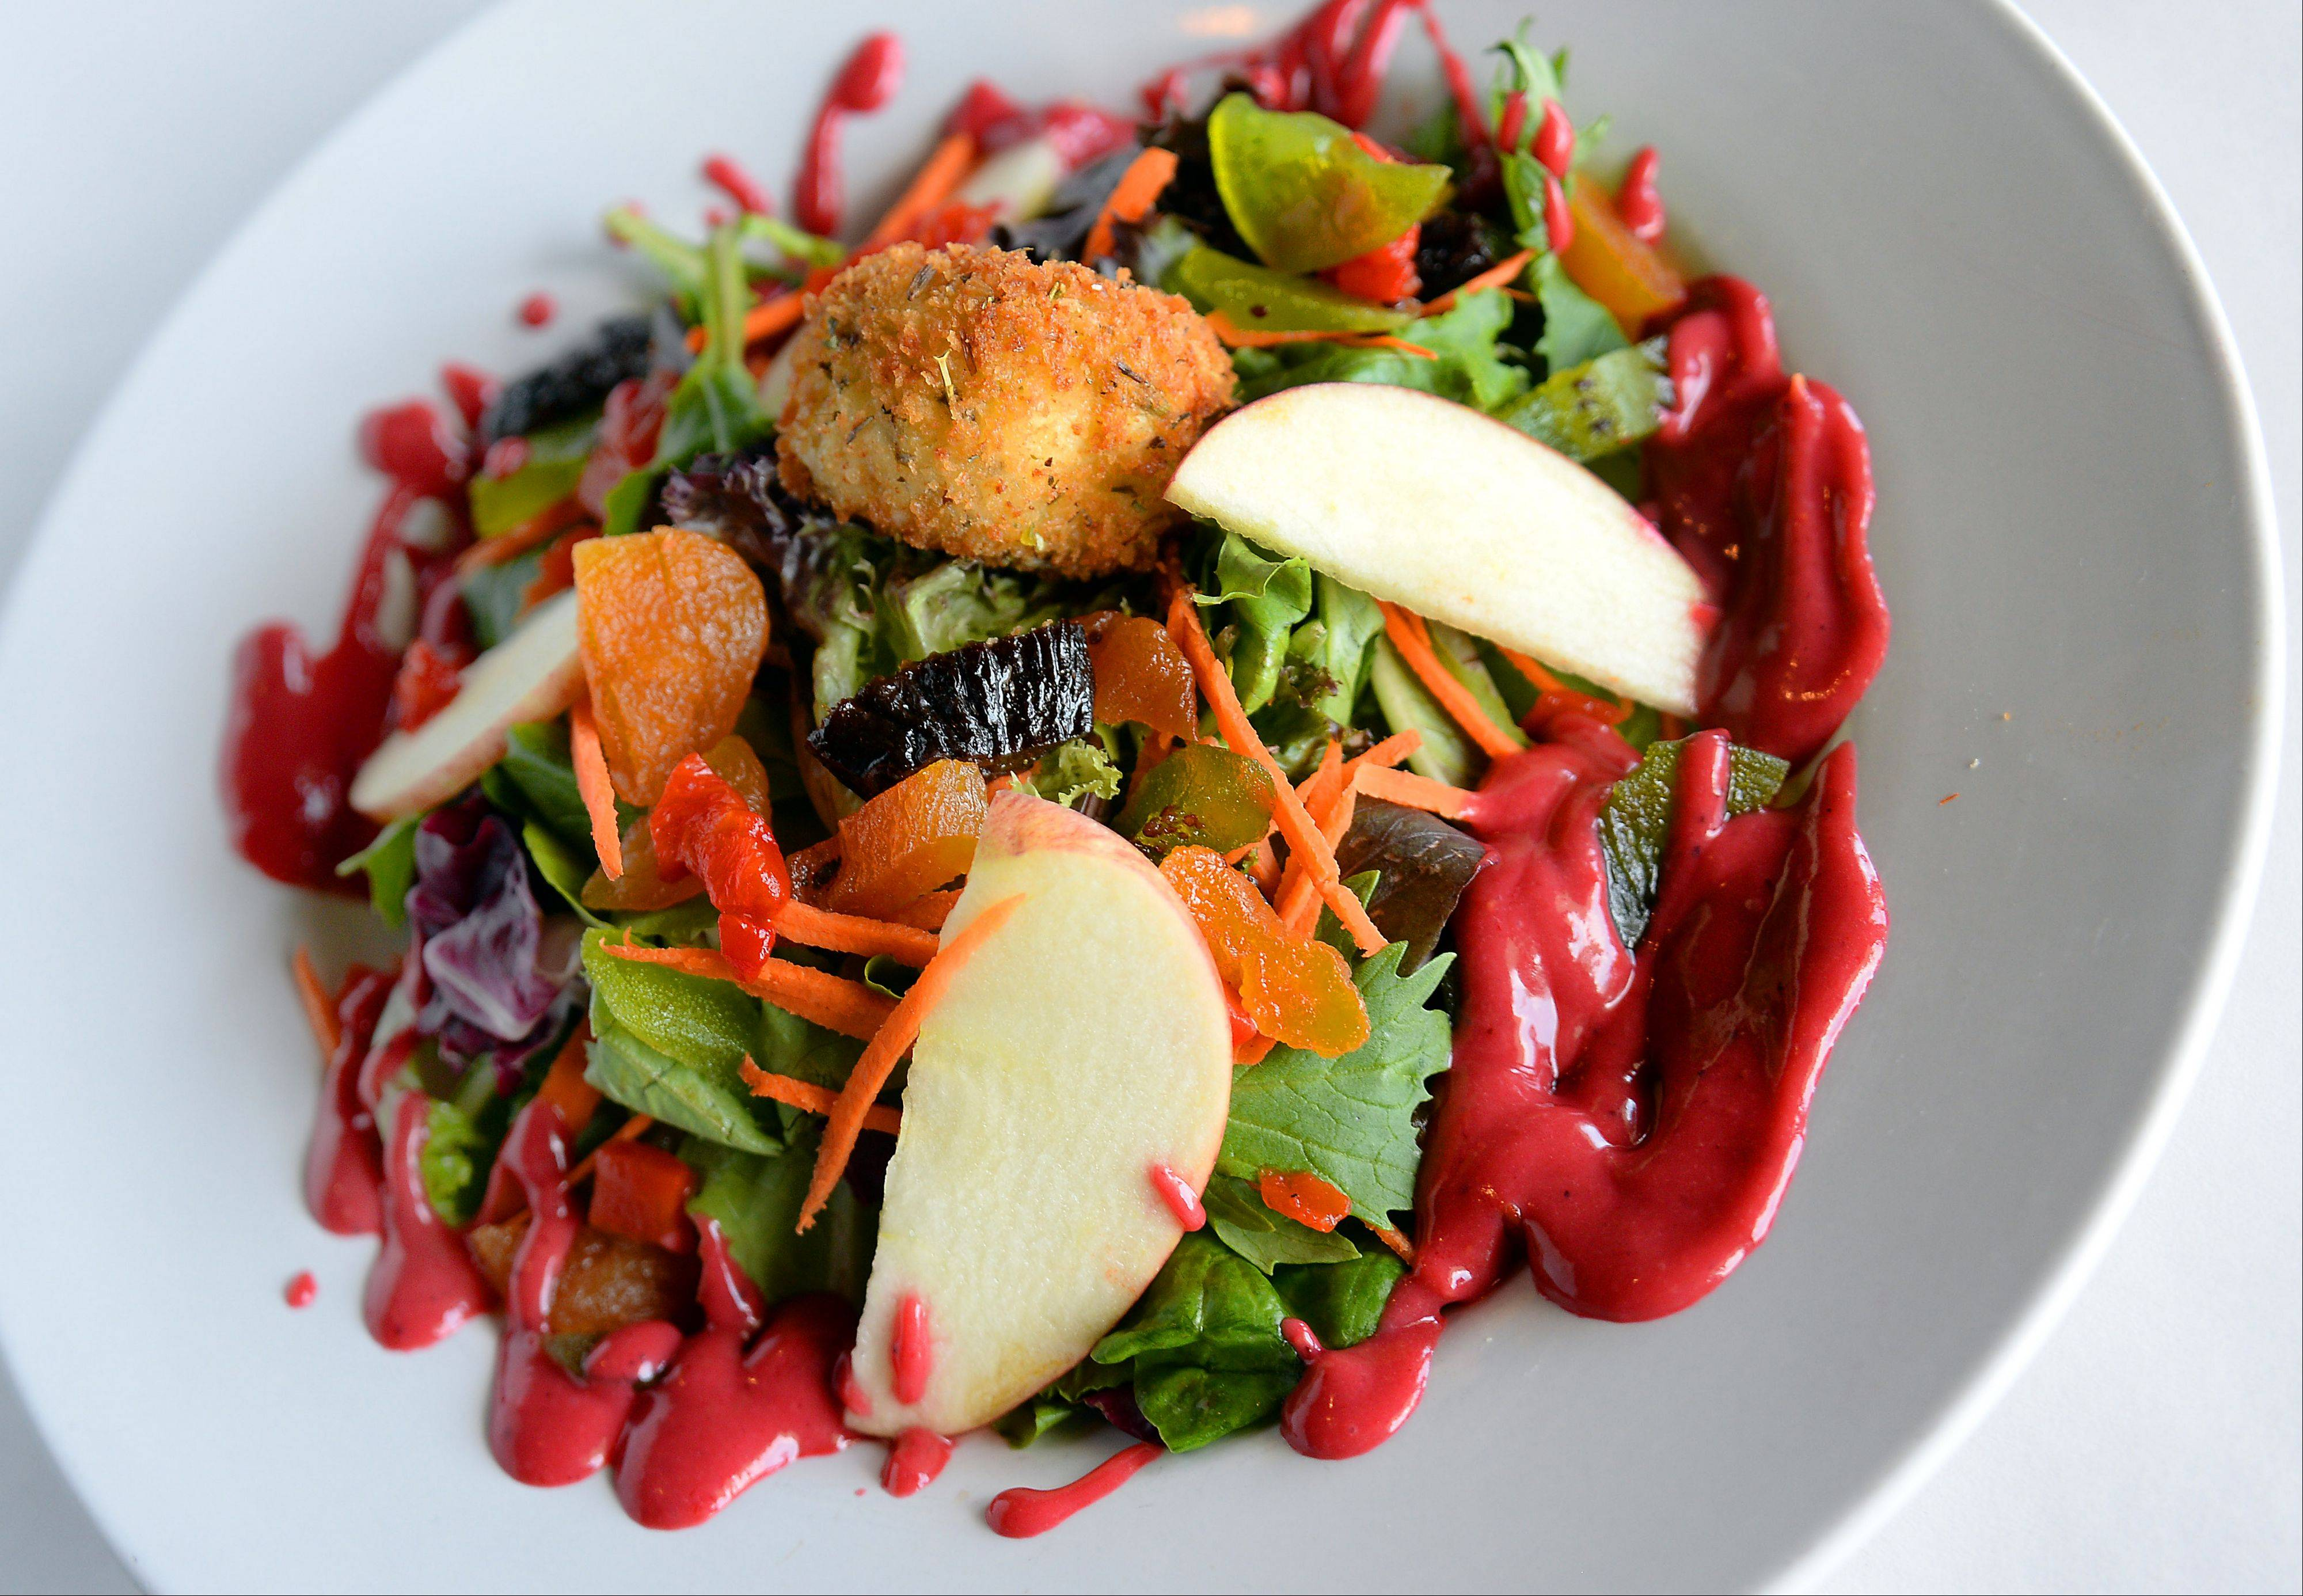 Chef Chris Barth's menu contains classic French fare, like this goat cheese salad.